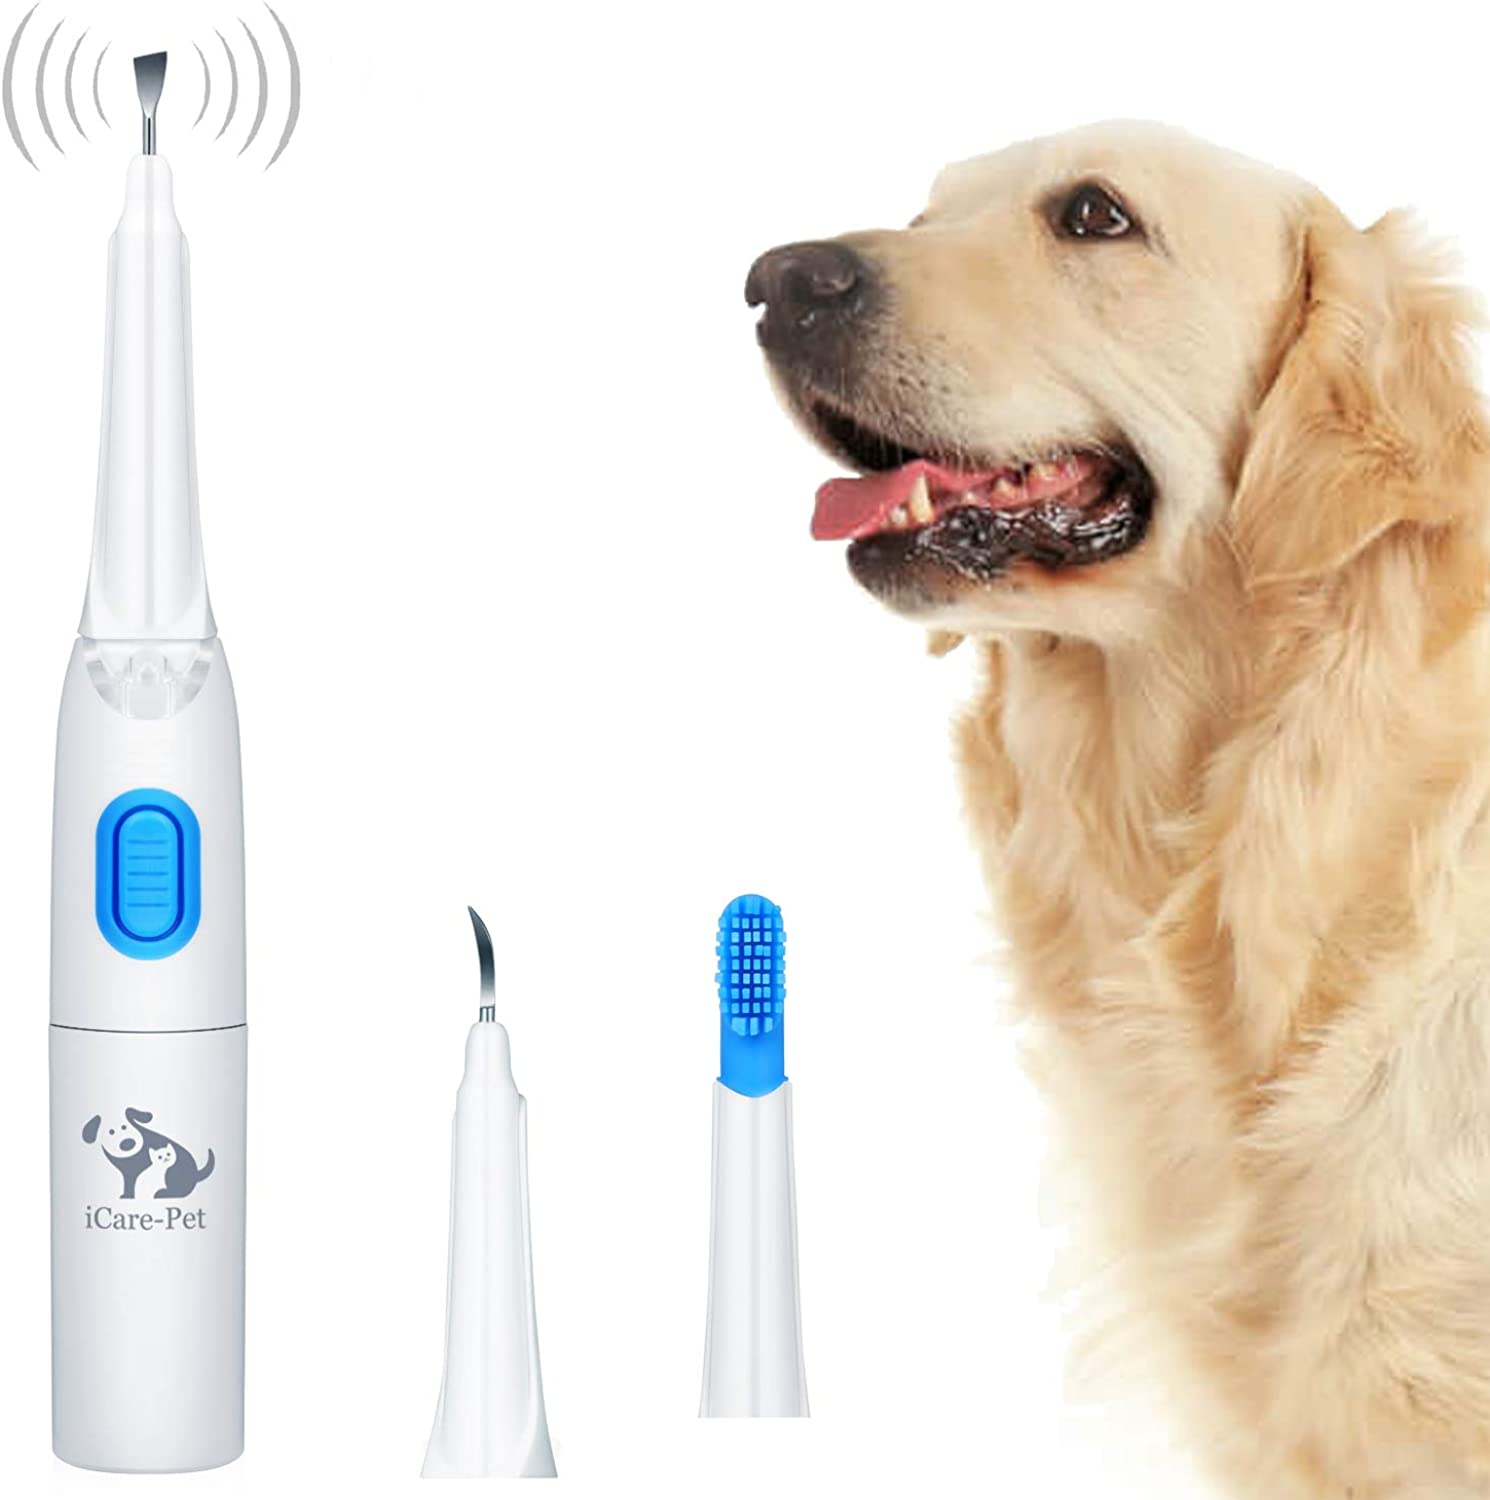 Pet Ultrasonic Dental Calculus   Ultrasound Toothbrush for Dogs   Dog Electronic Toothbrush   Ultrasonic Teeth Cleaner   for Home Or Clinic